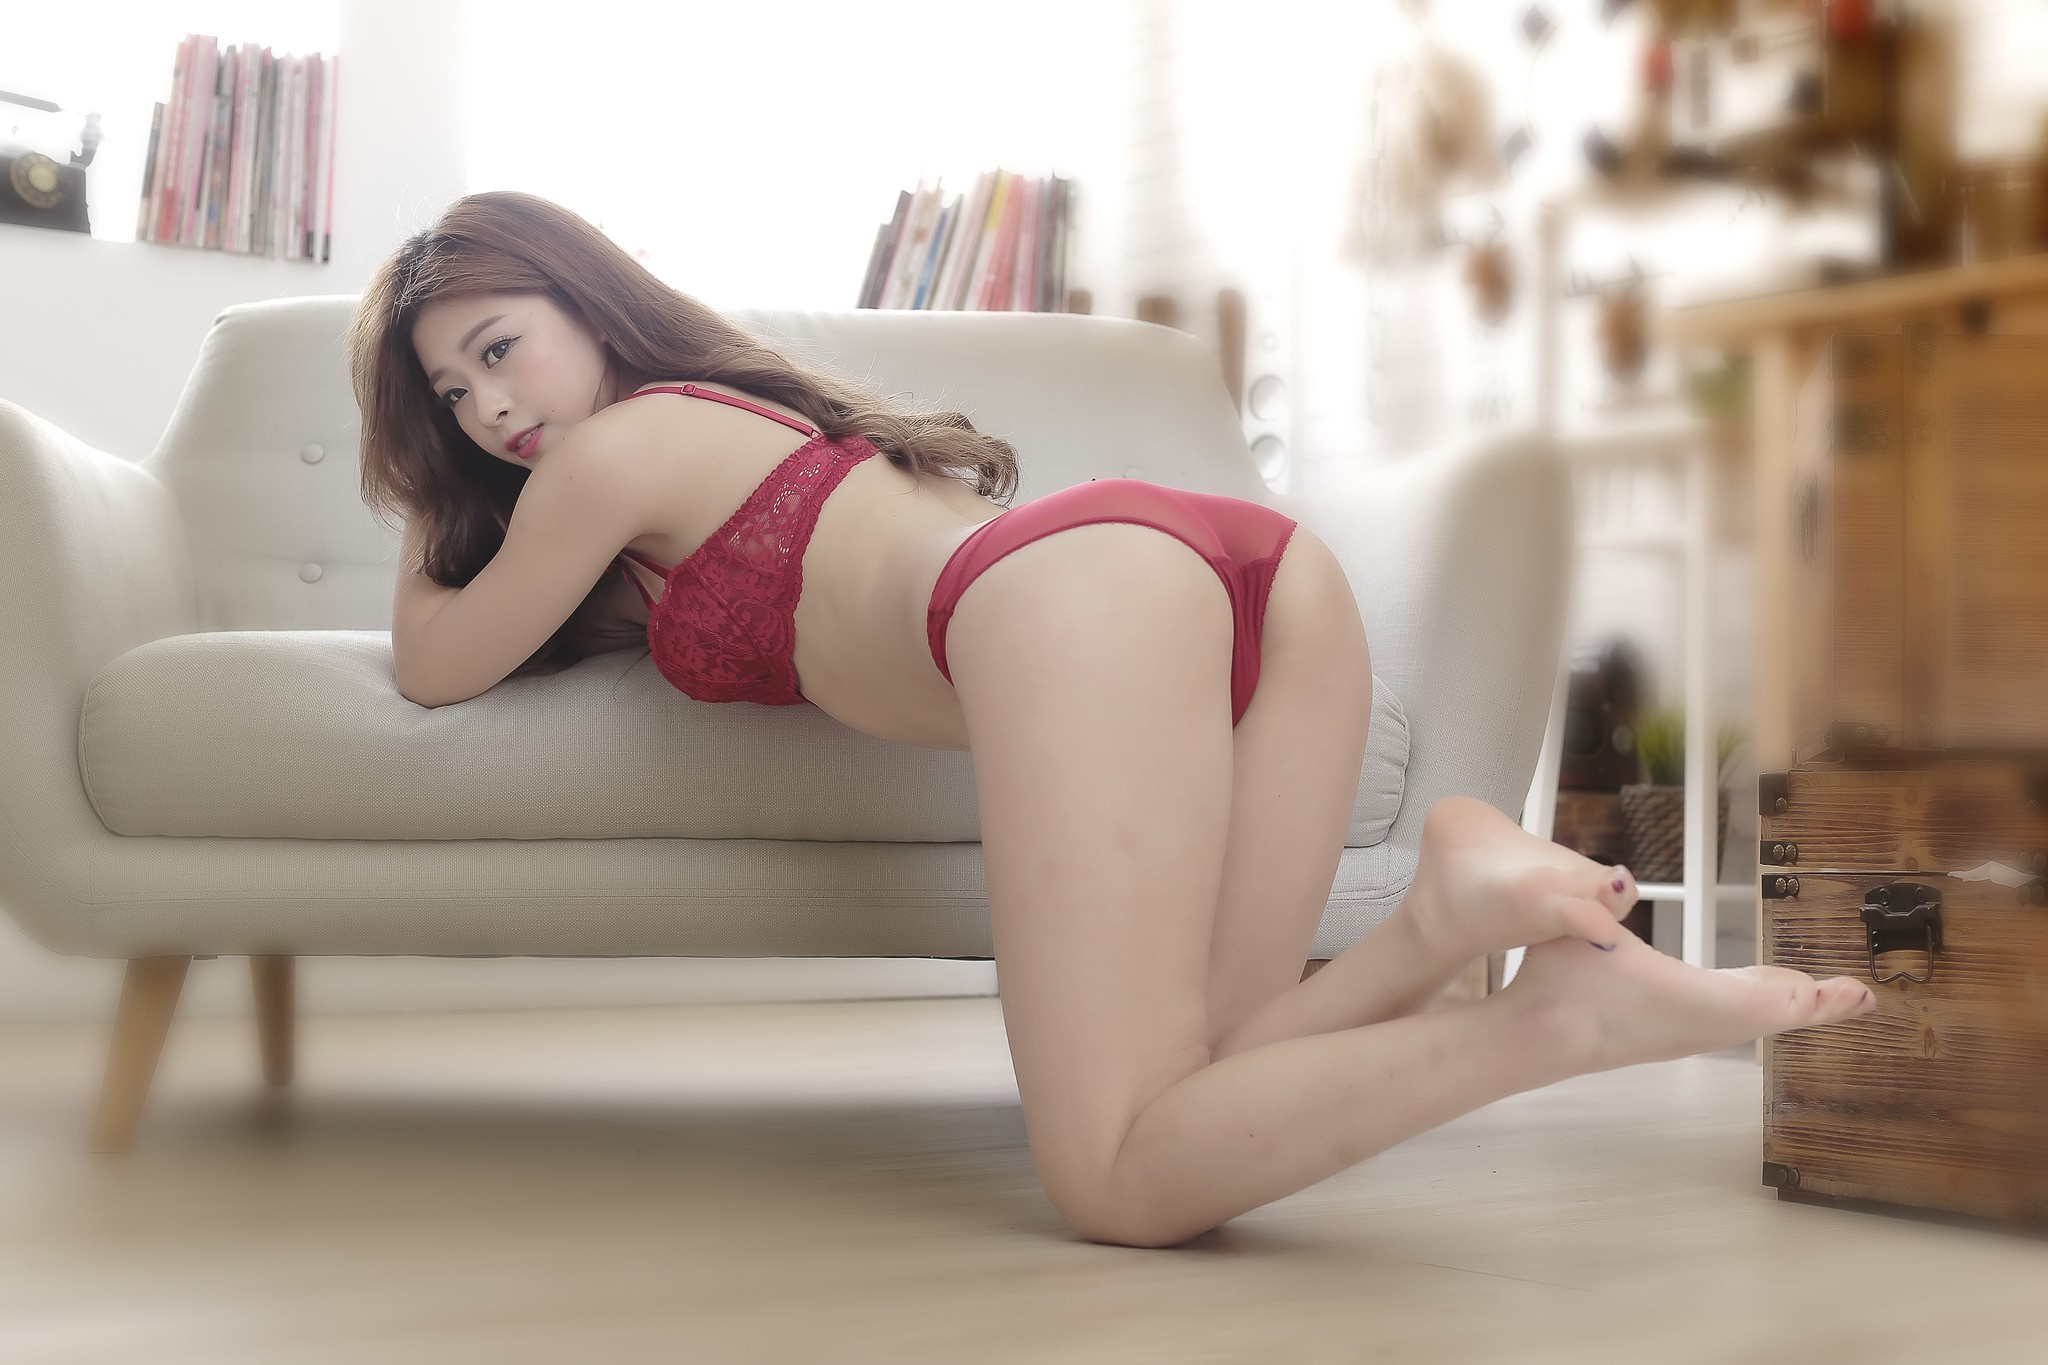 asian a Hot couch on